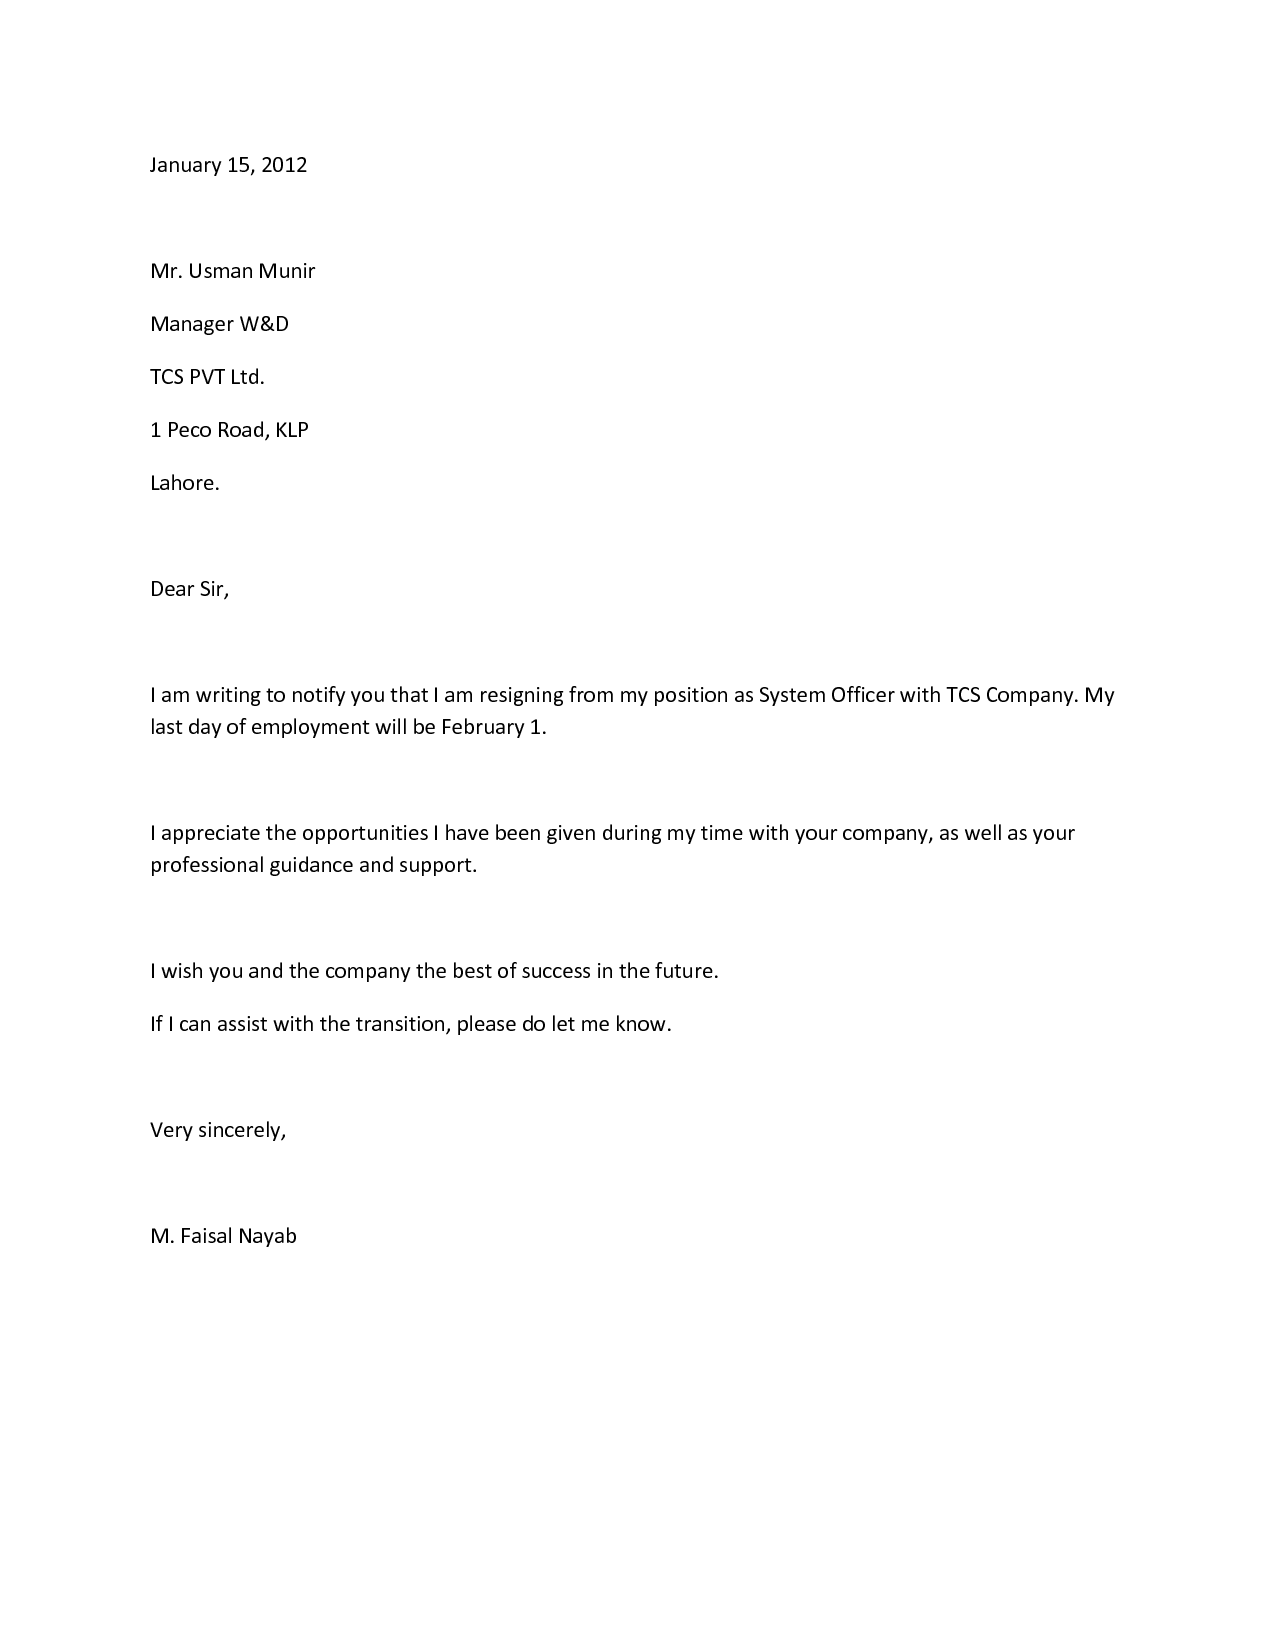 Awesome HOW TO WRITE A PROPER RESIGNATION LETTER IMAGES